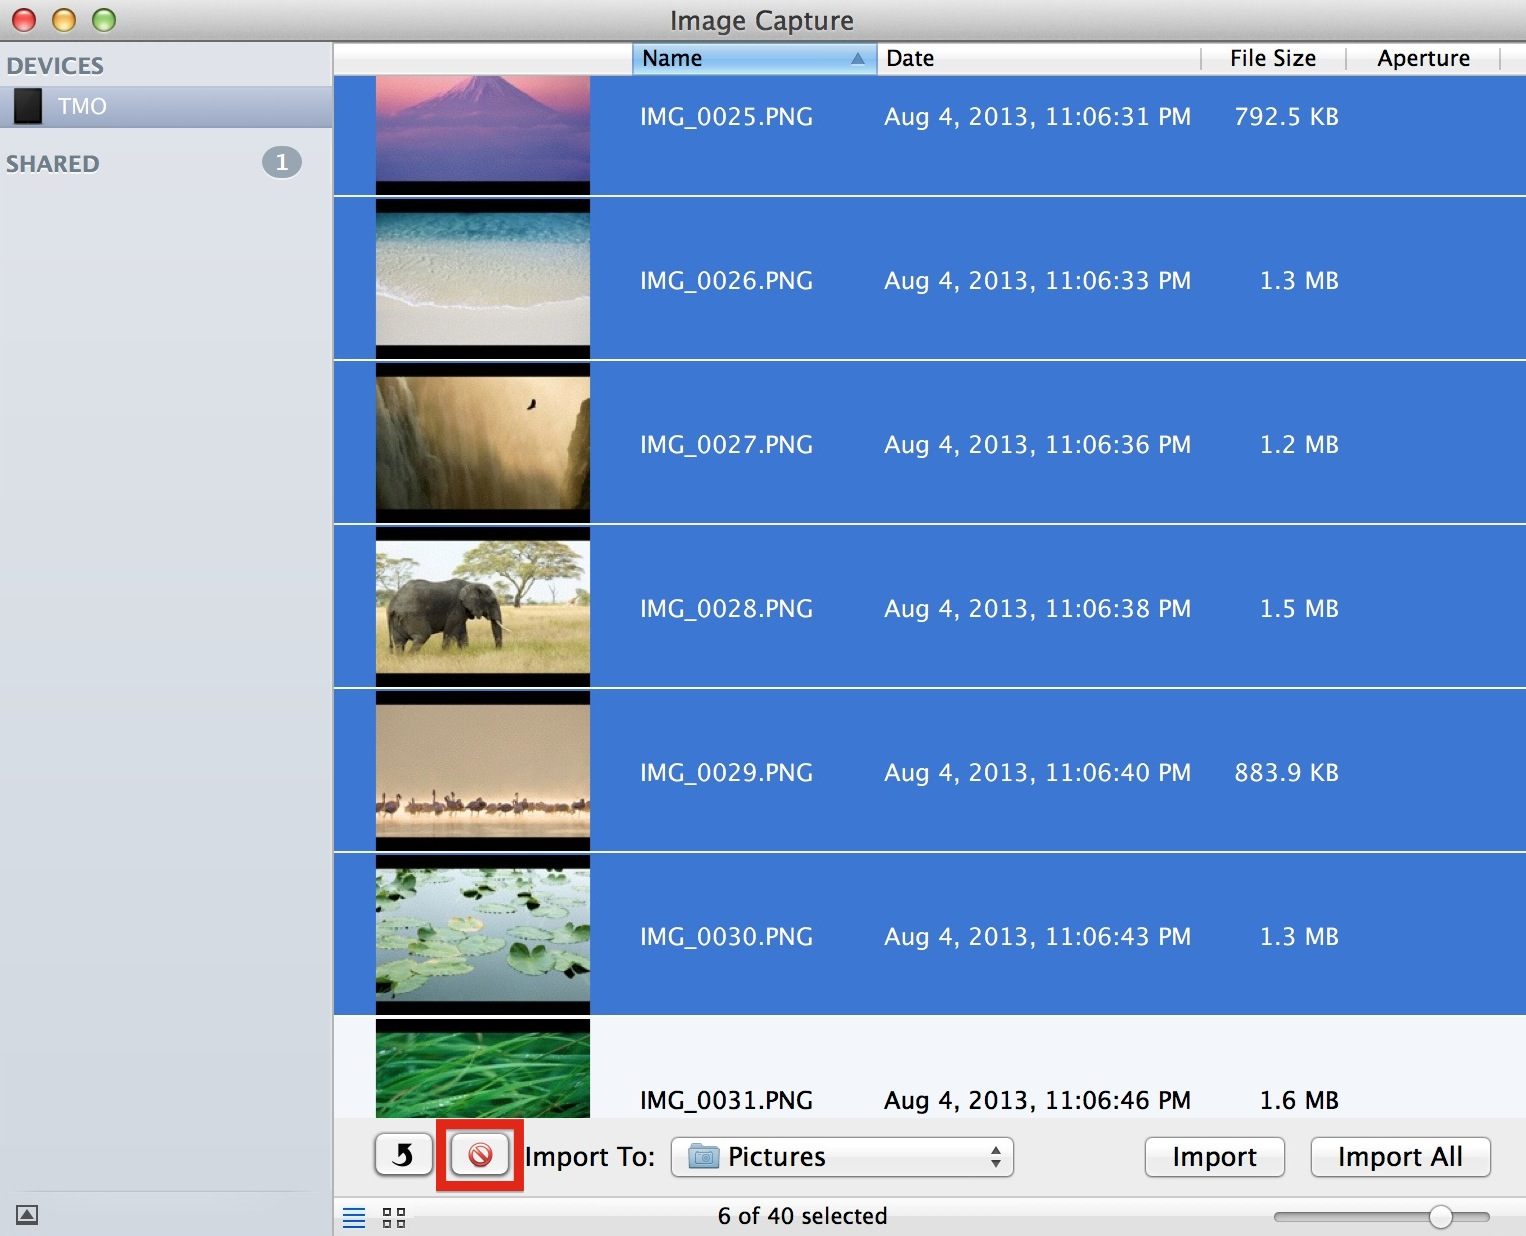 How to Bulk Delete iPad Photos Using Image Capture